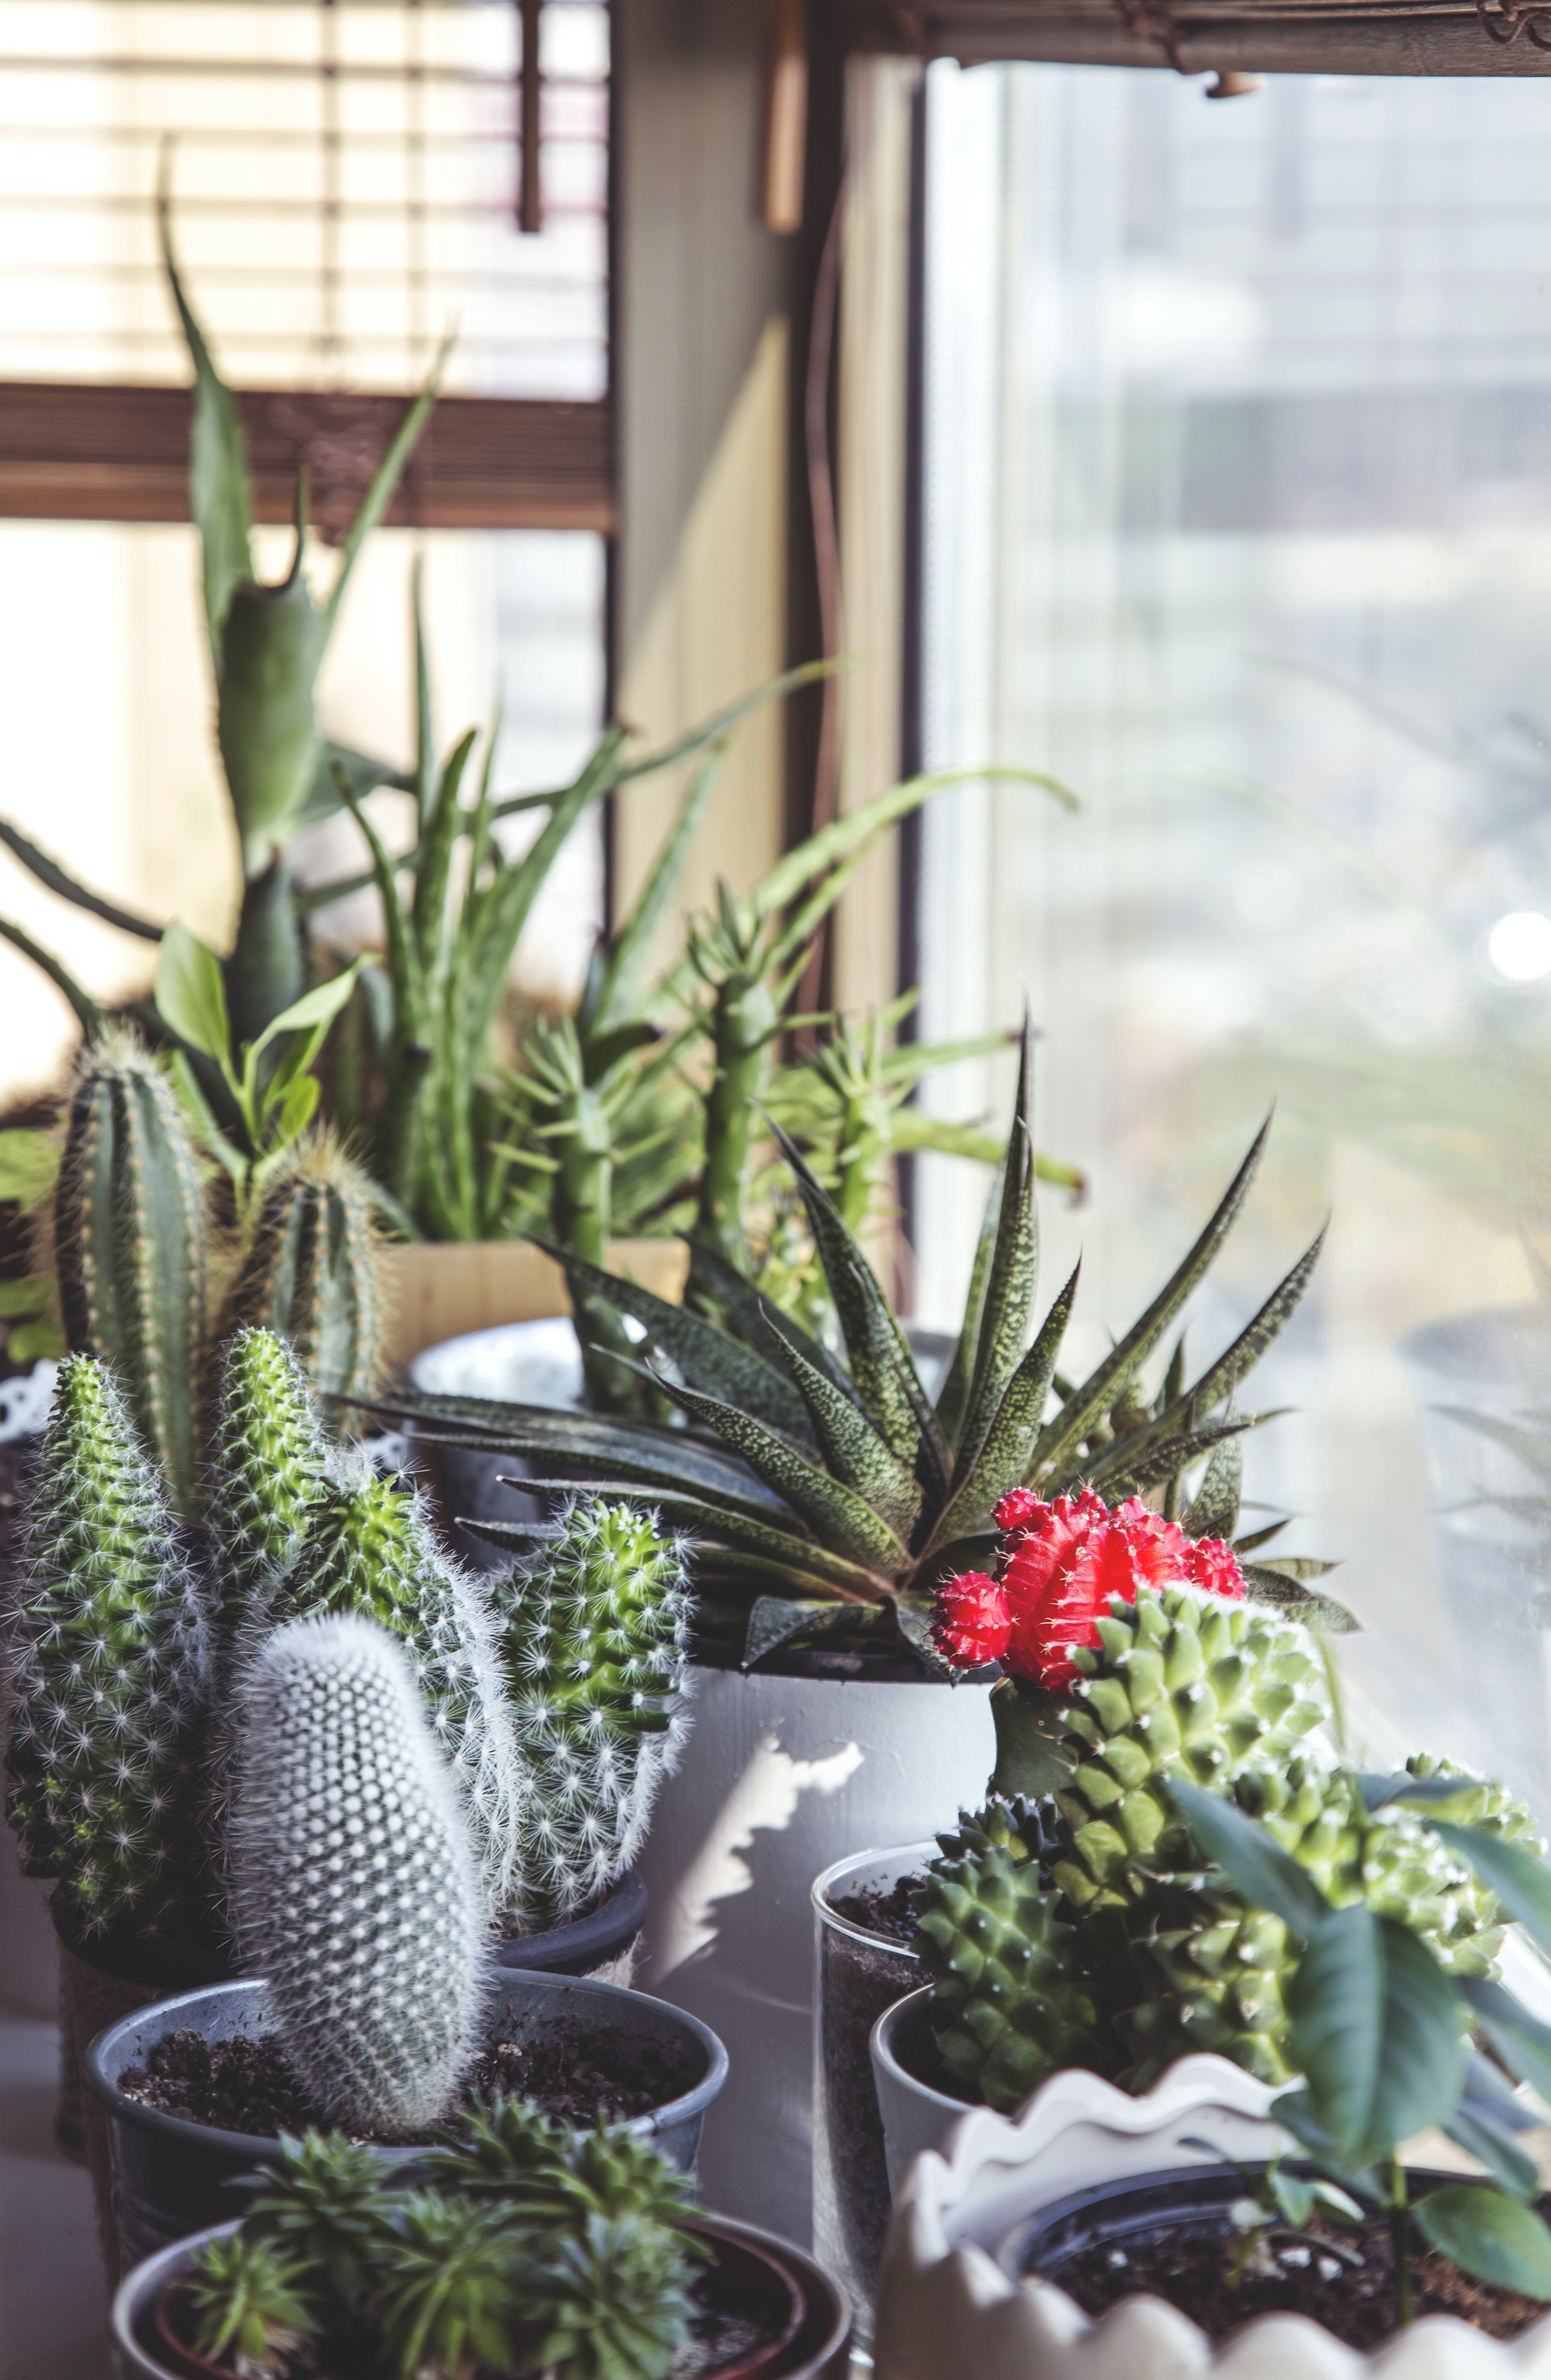 Succulent plants and cacti sit in pots in front of a window